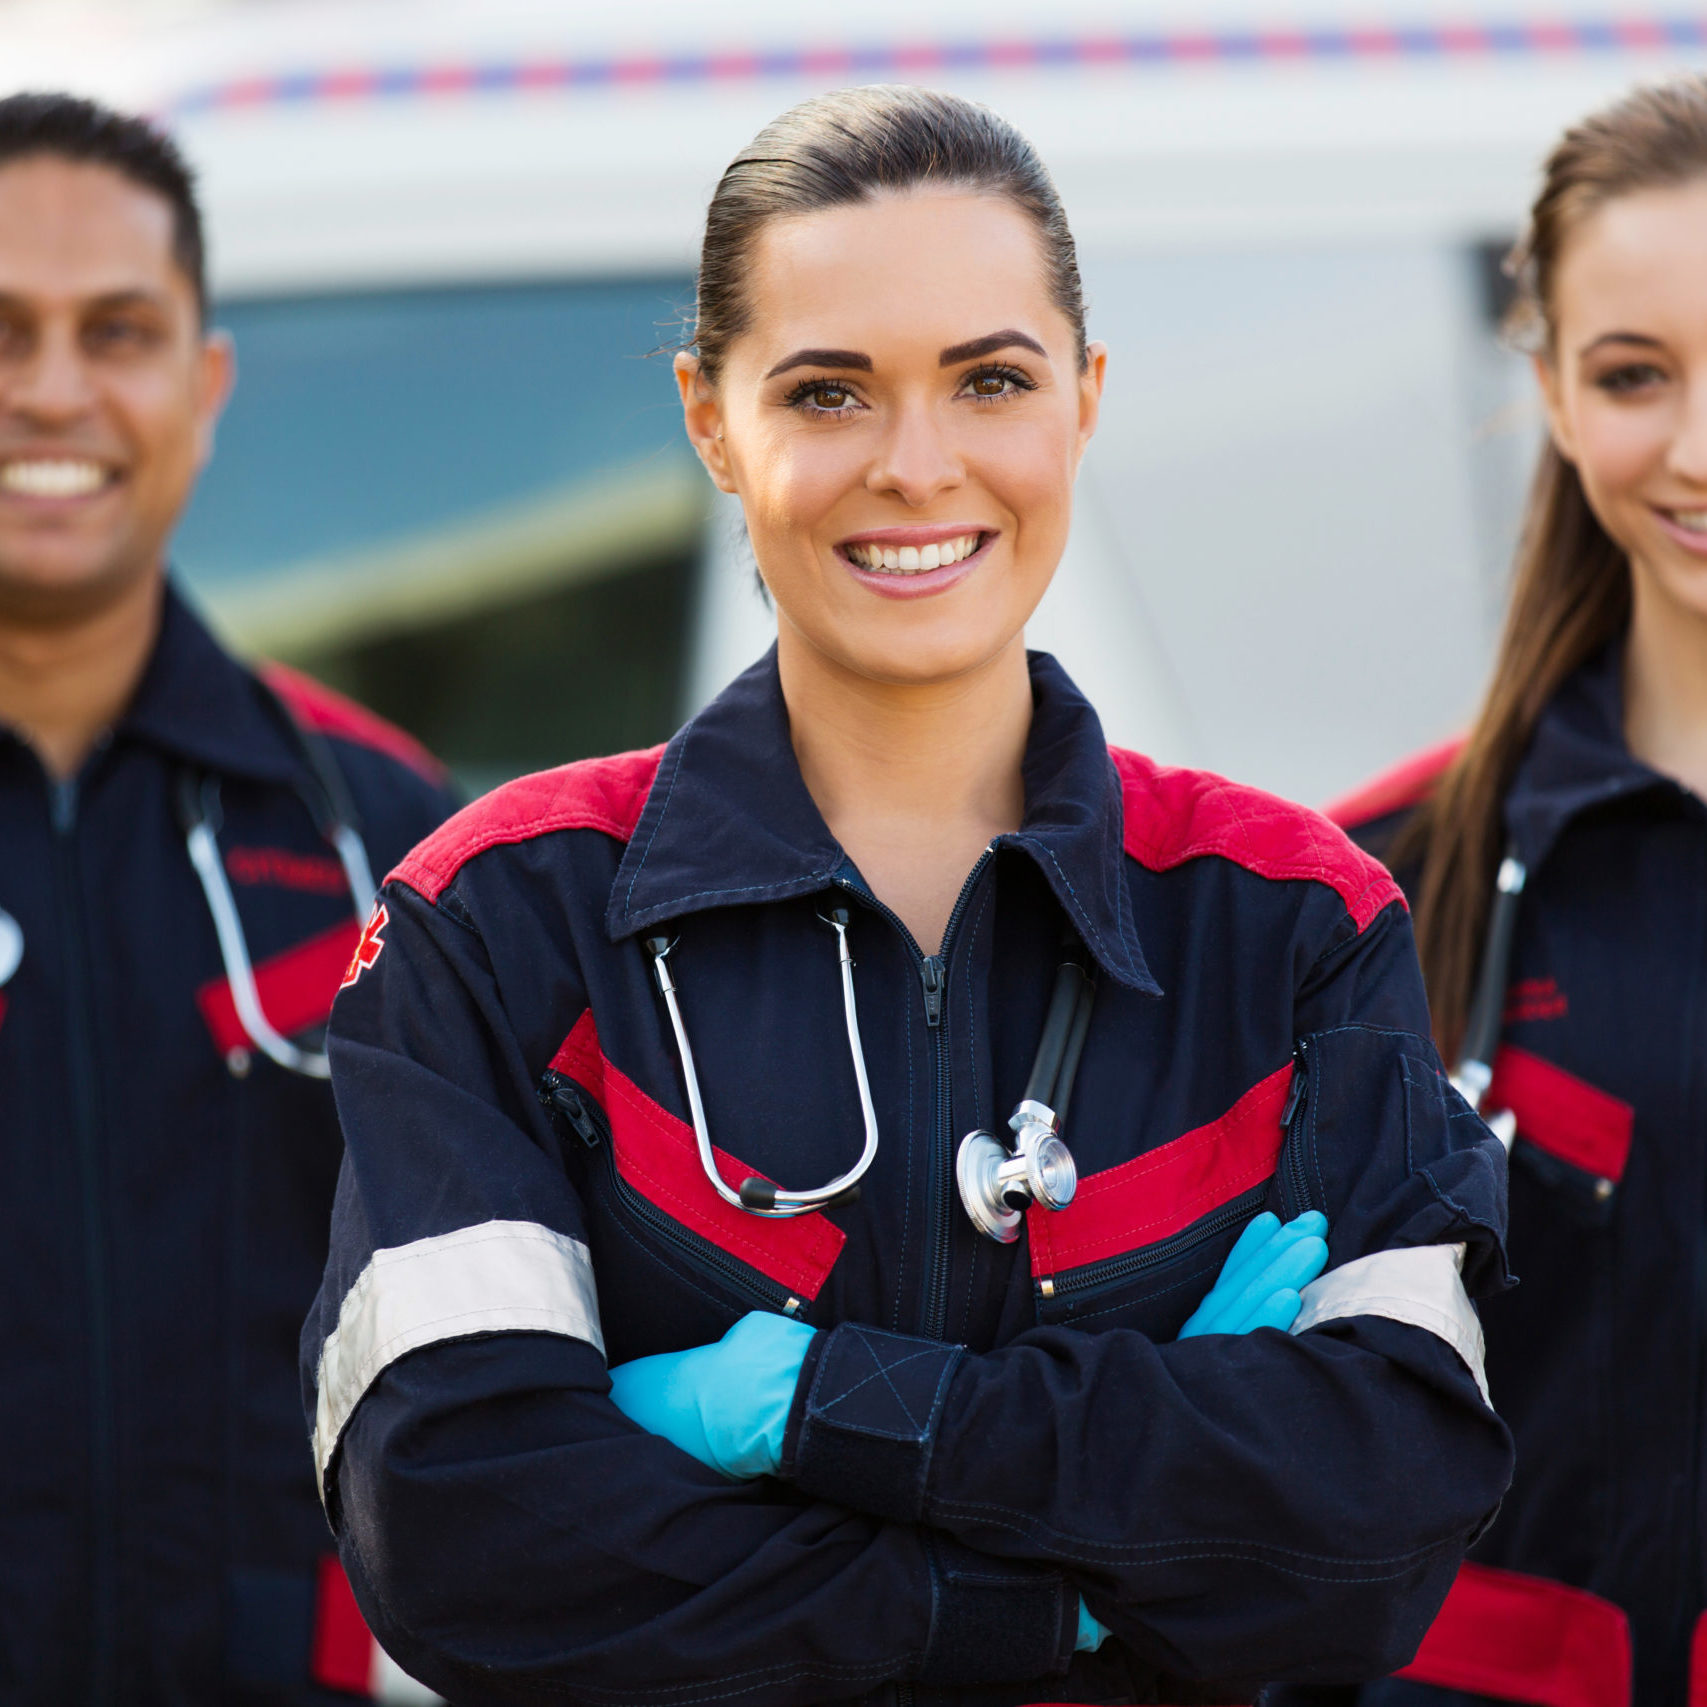 beautiful young EMT and colleagues in front of ambulance